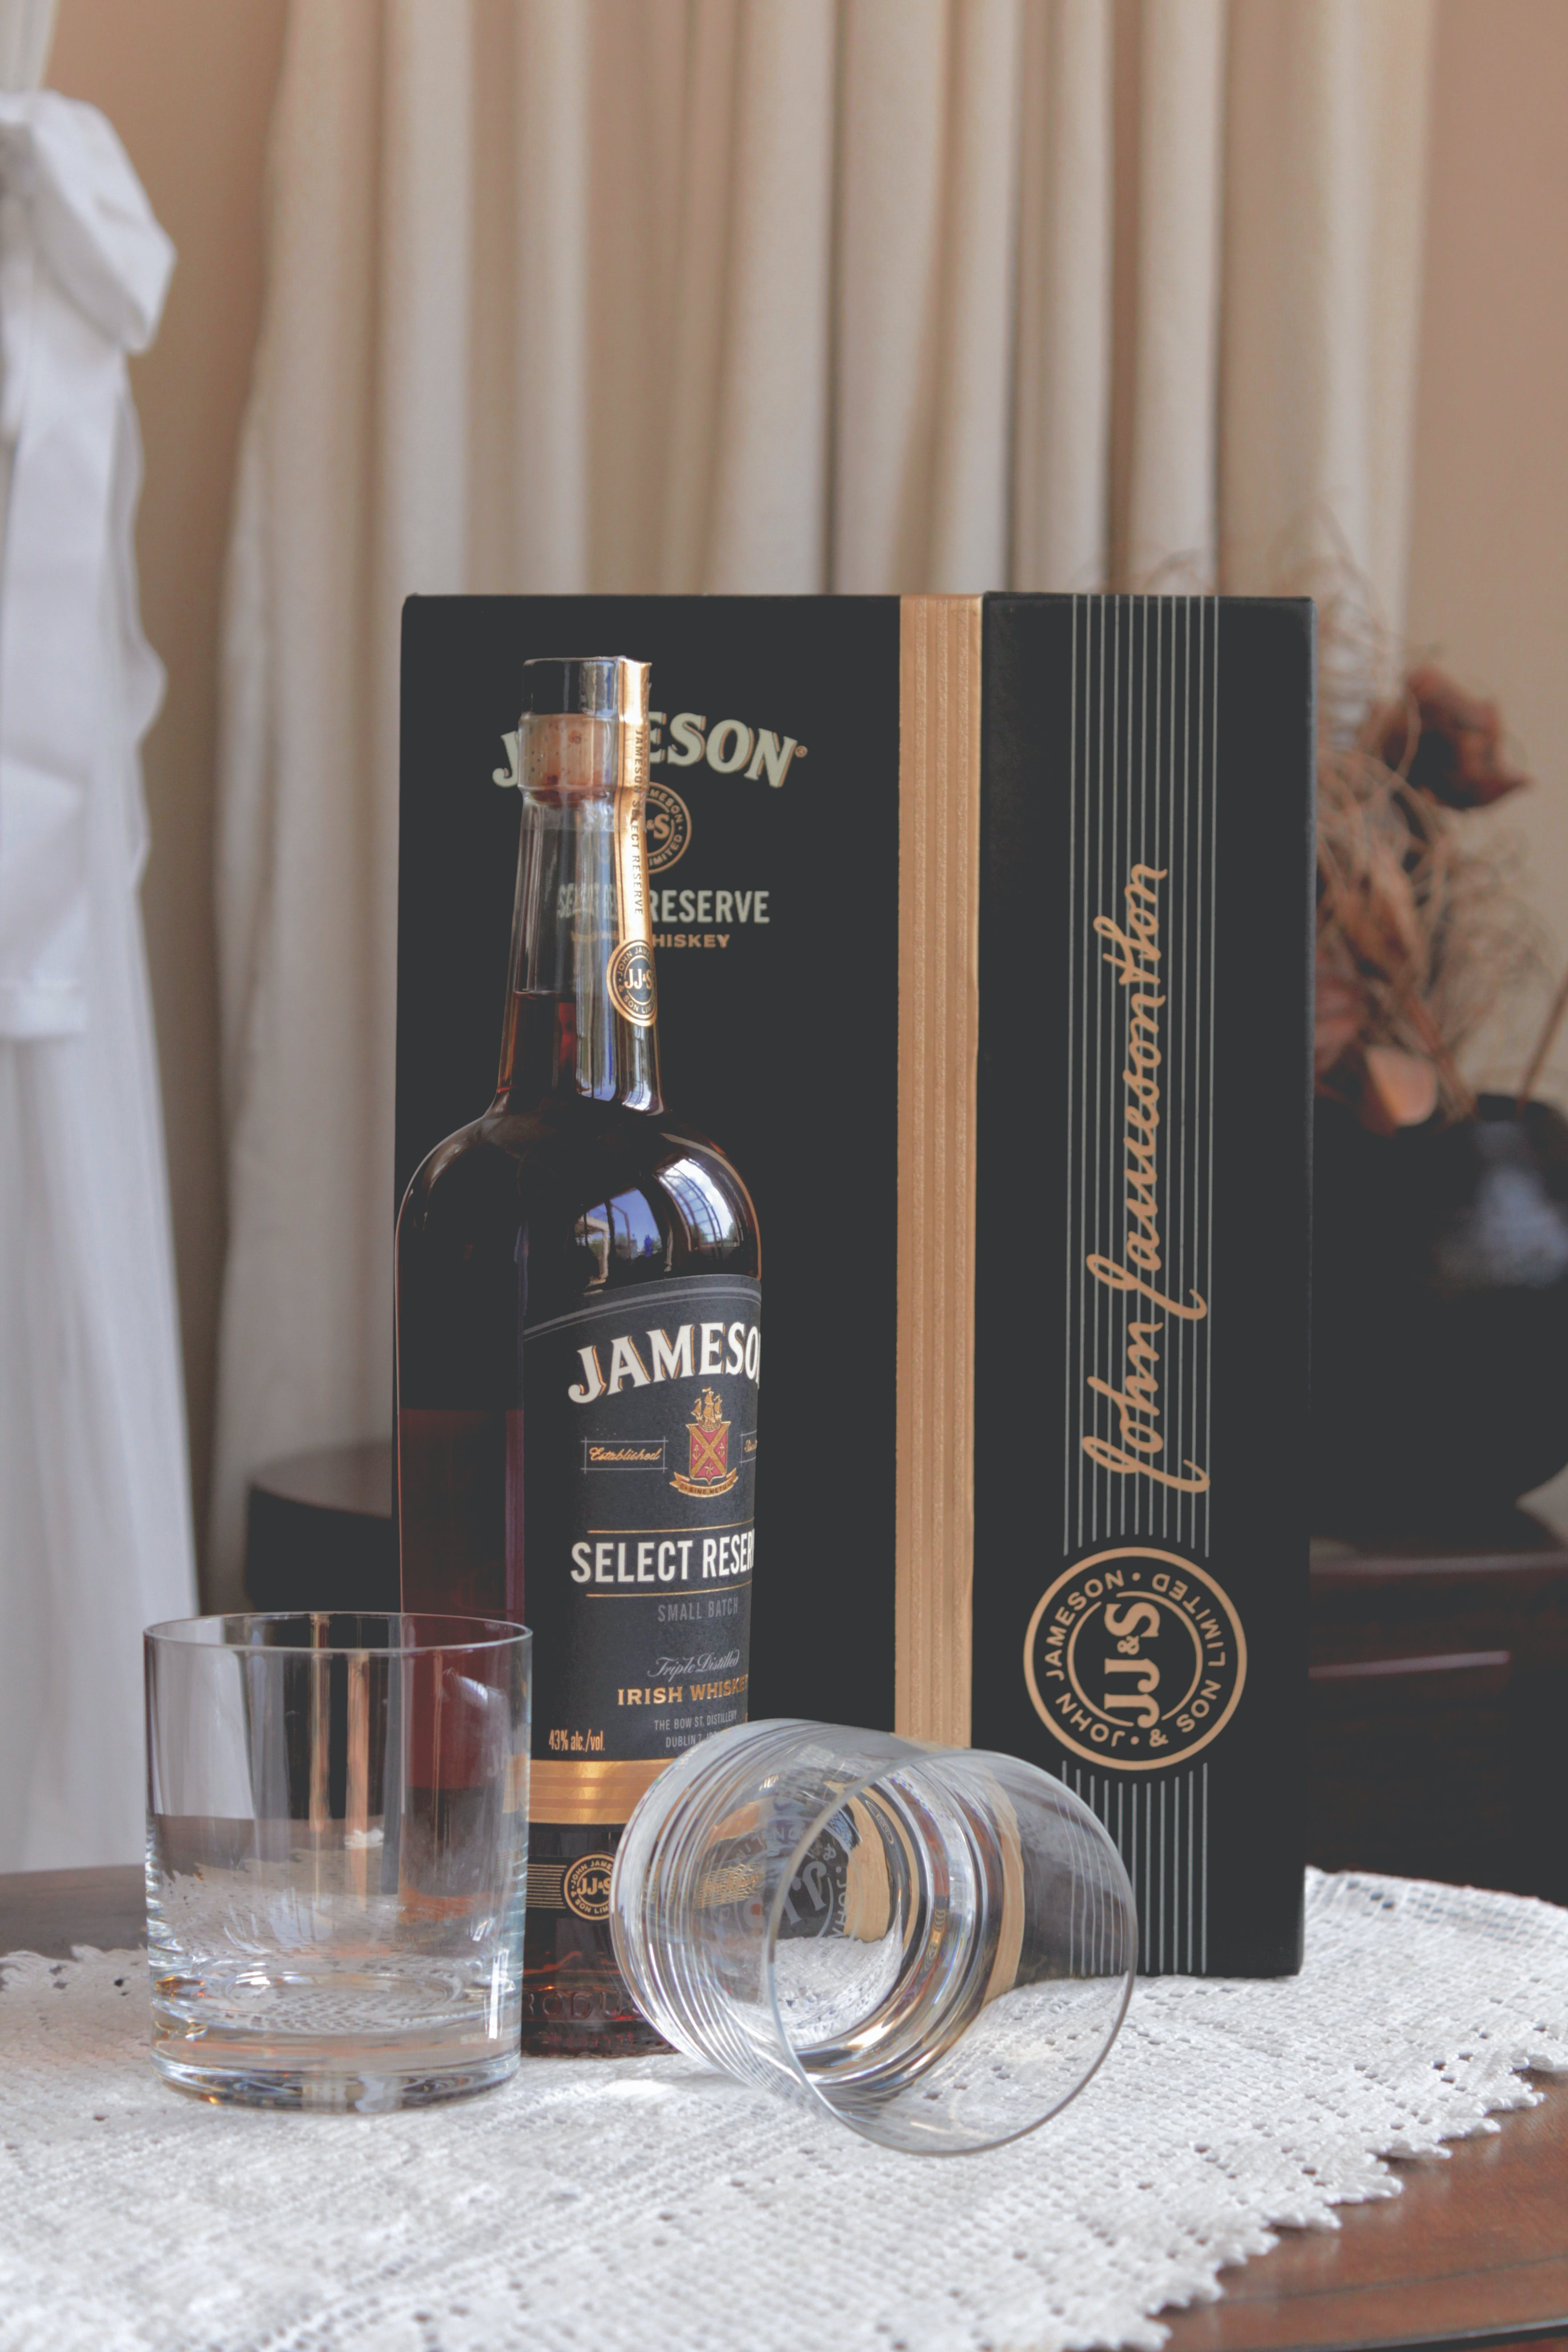 Jameson Select Bottle Near Clear Glass Drinking Cups and Box